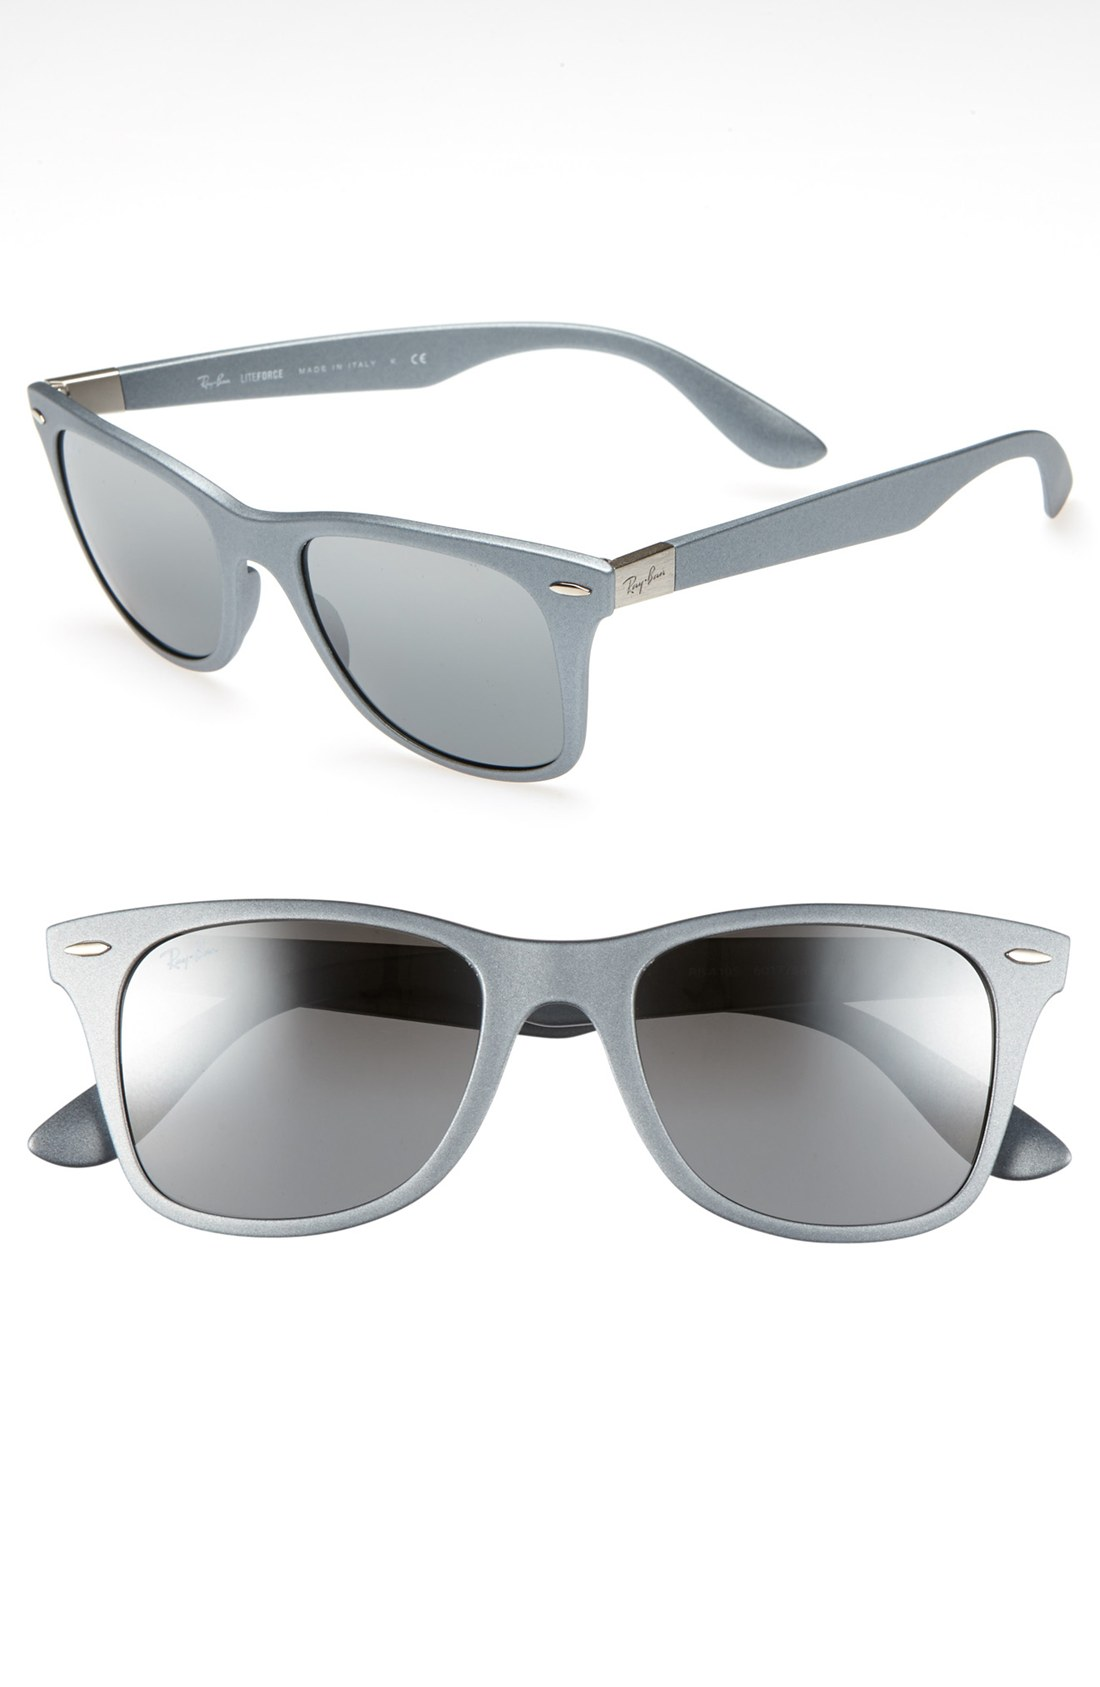 Ray Ban 52mm Sunglasses In Silver Silver Mirror Lyst